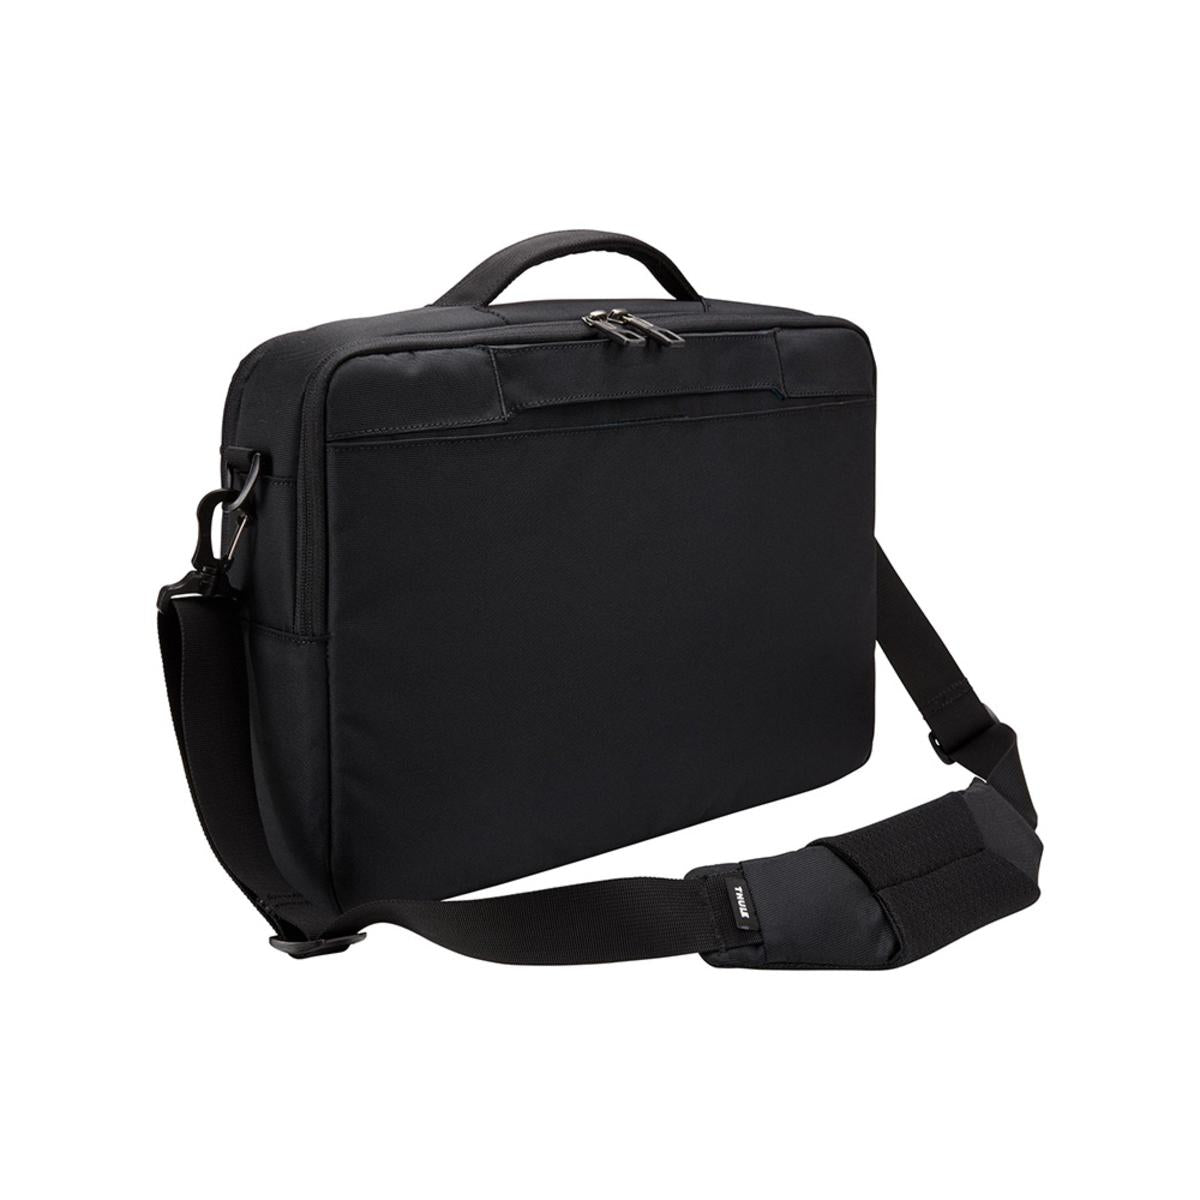 Thule Subterra Laptop Bag 15.6 inch